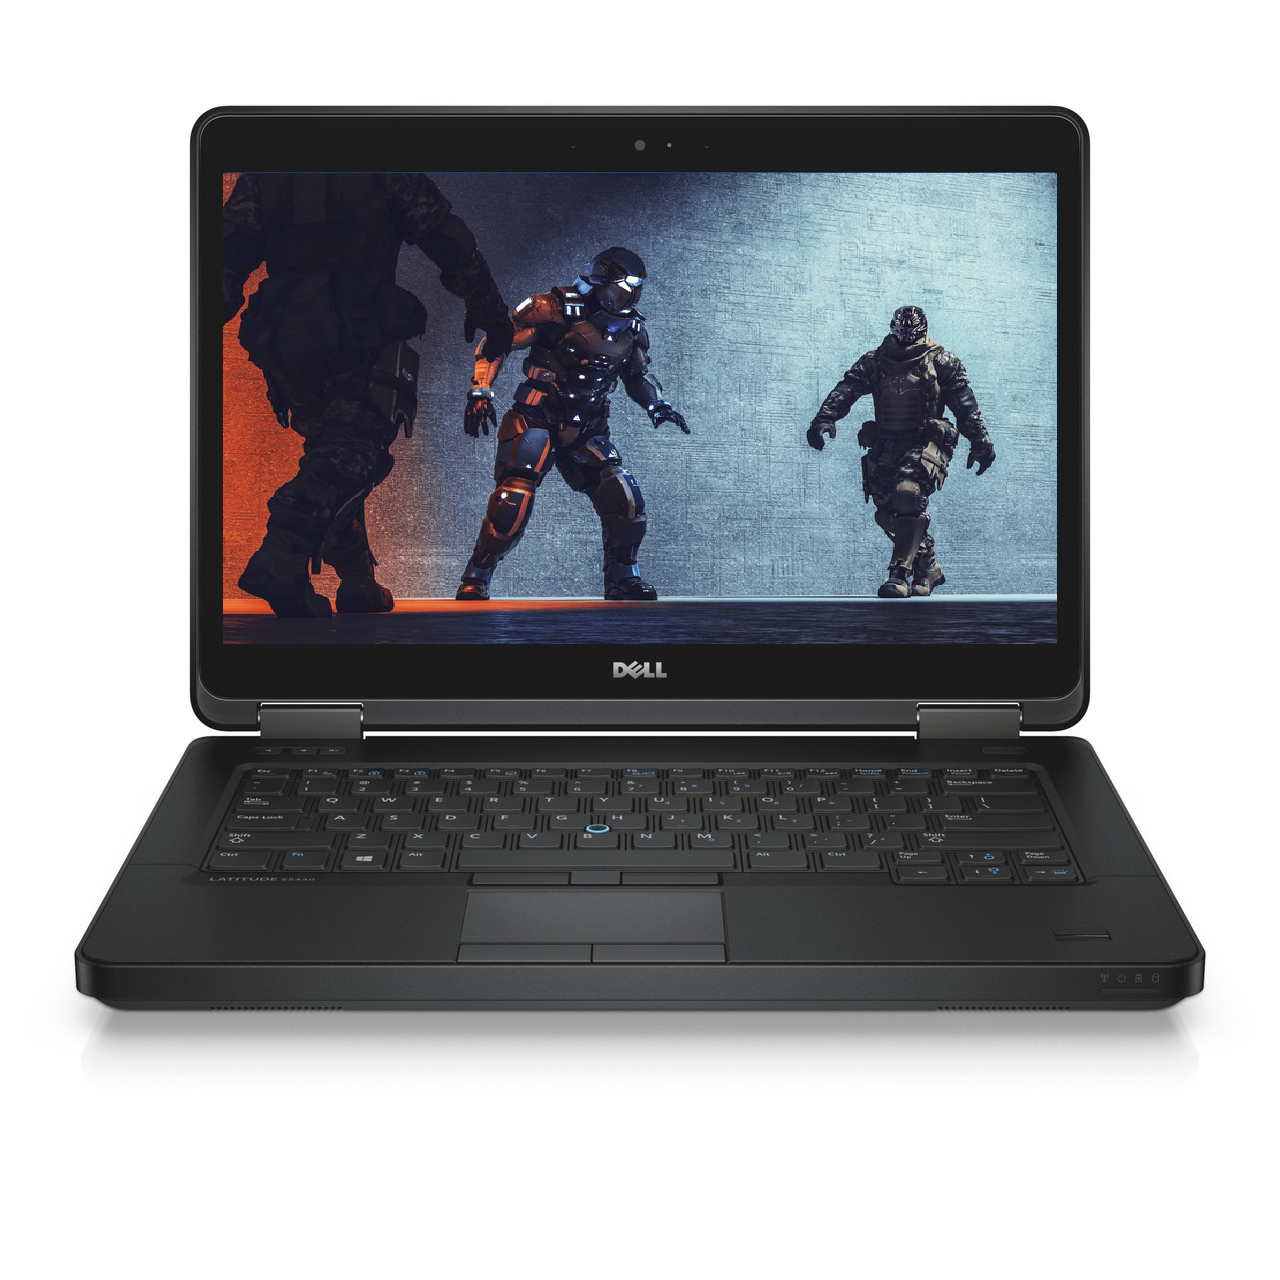 Laptop Windows - Dell Latitude Gaming Laptop Windows 10 2.70GHz Intel Core i5 16GB 1TB PC WebCam